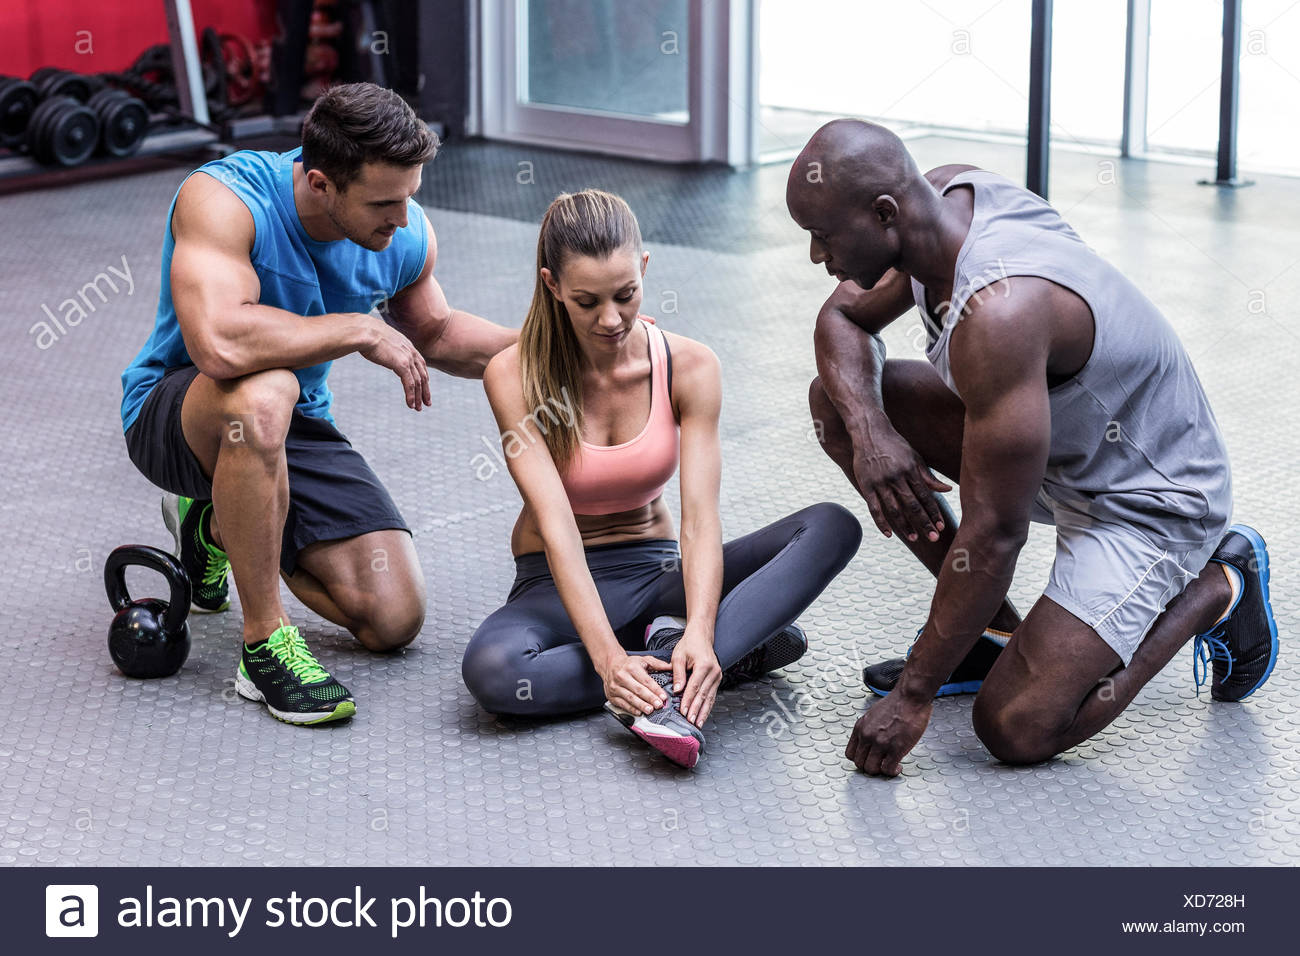 Muscular woman having an ankle injury - Stock Image